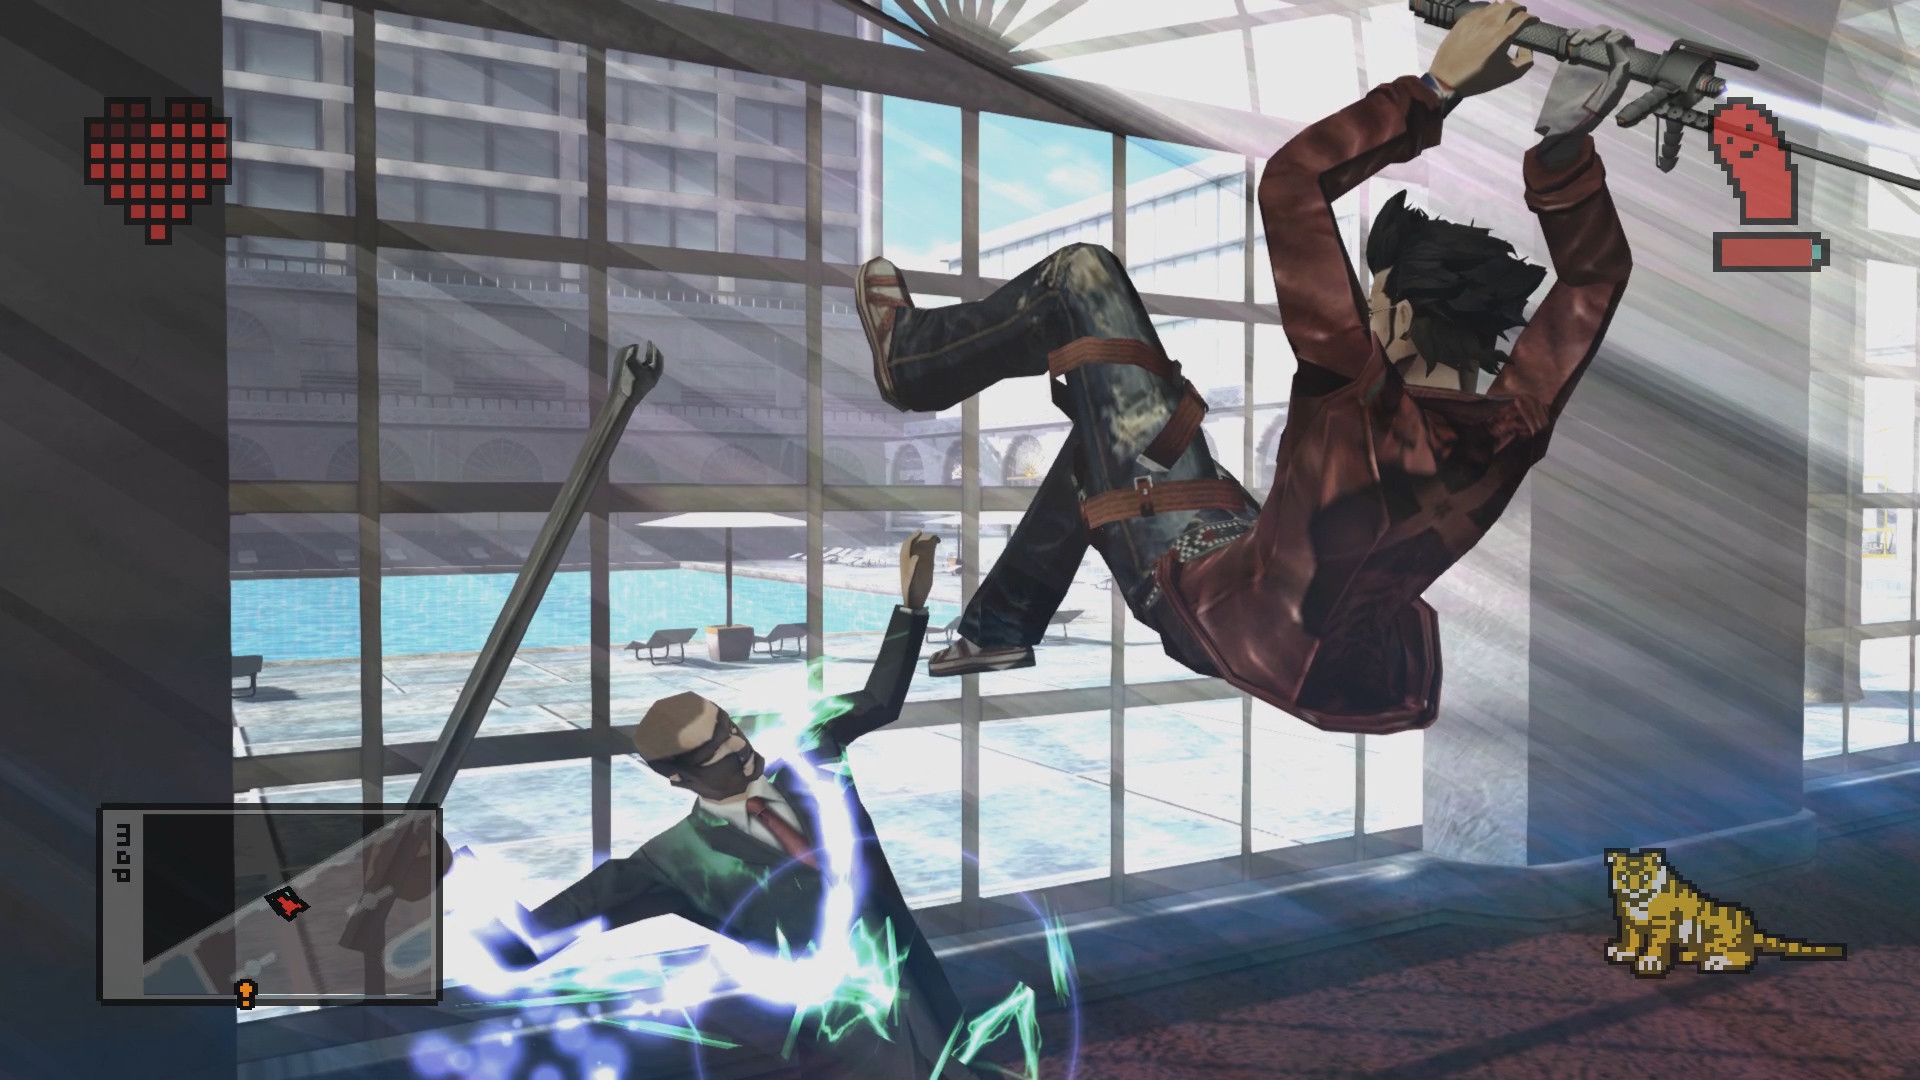 An Image from No More Heroes 2: Desperate Struggle